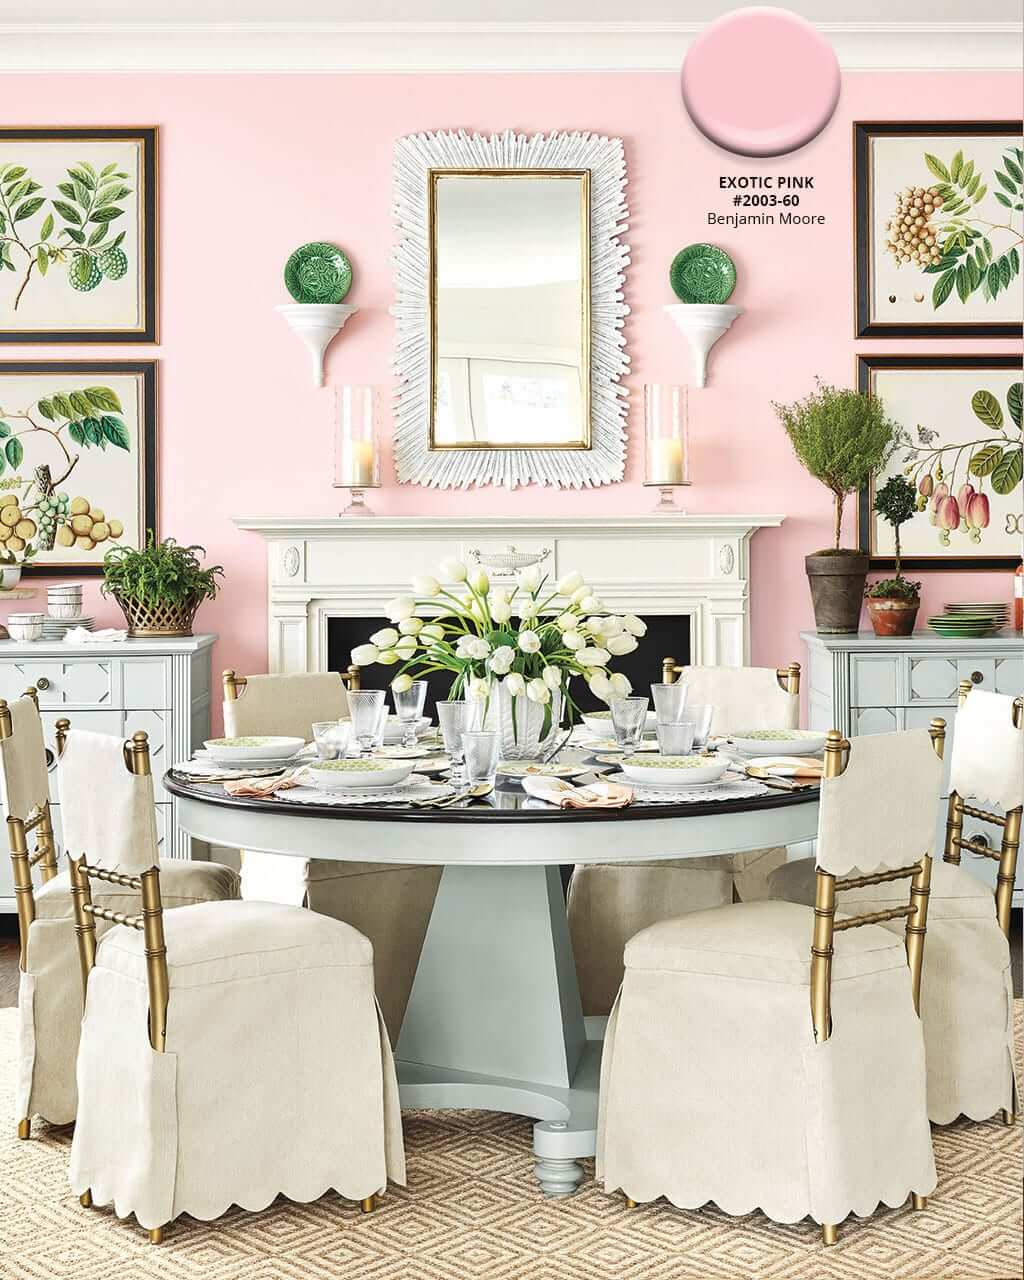 Spring Decorating Ideas: Get Your Home Ready for Warm Weather